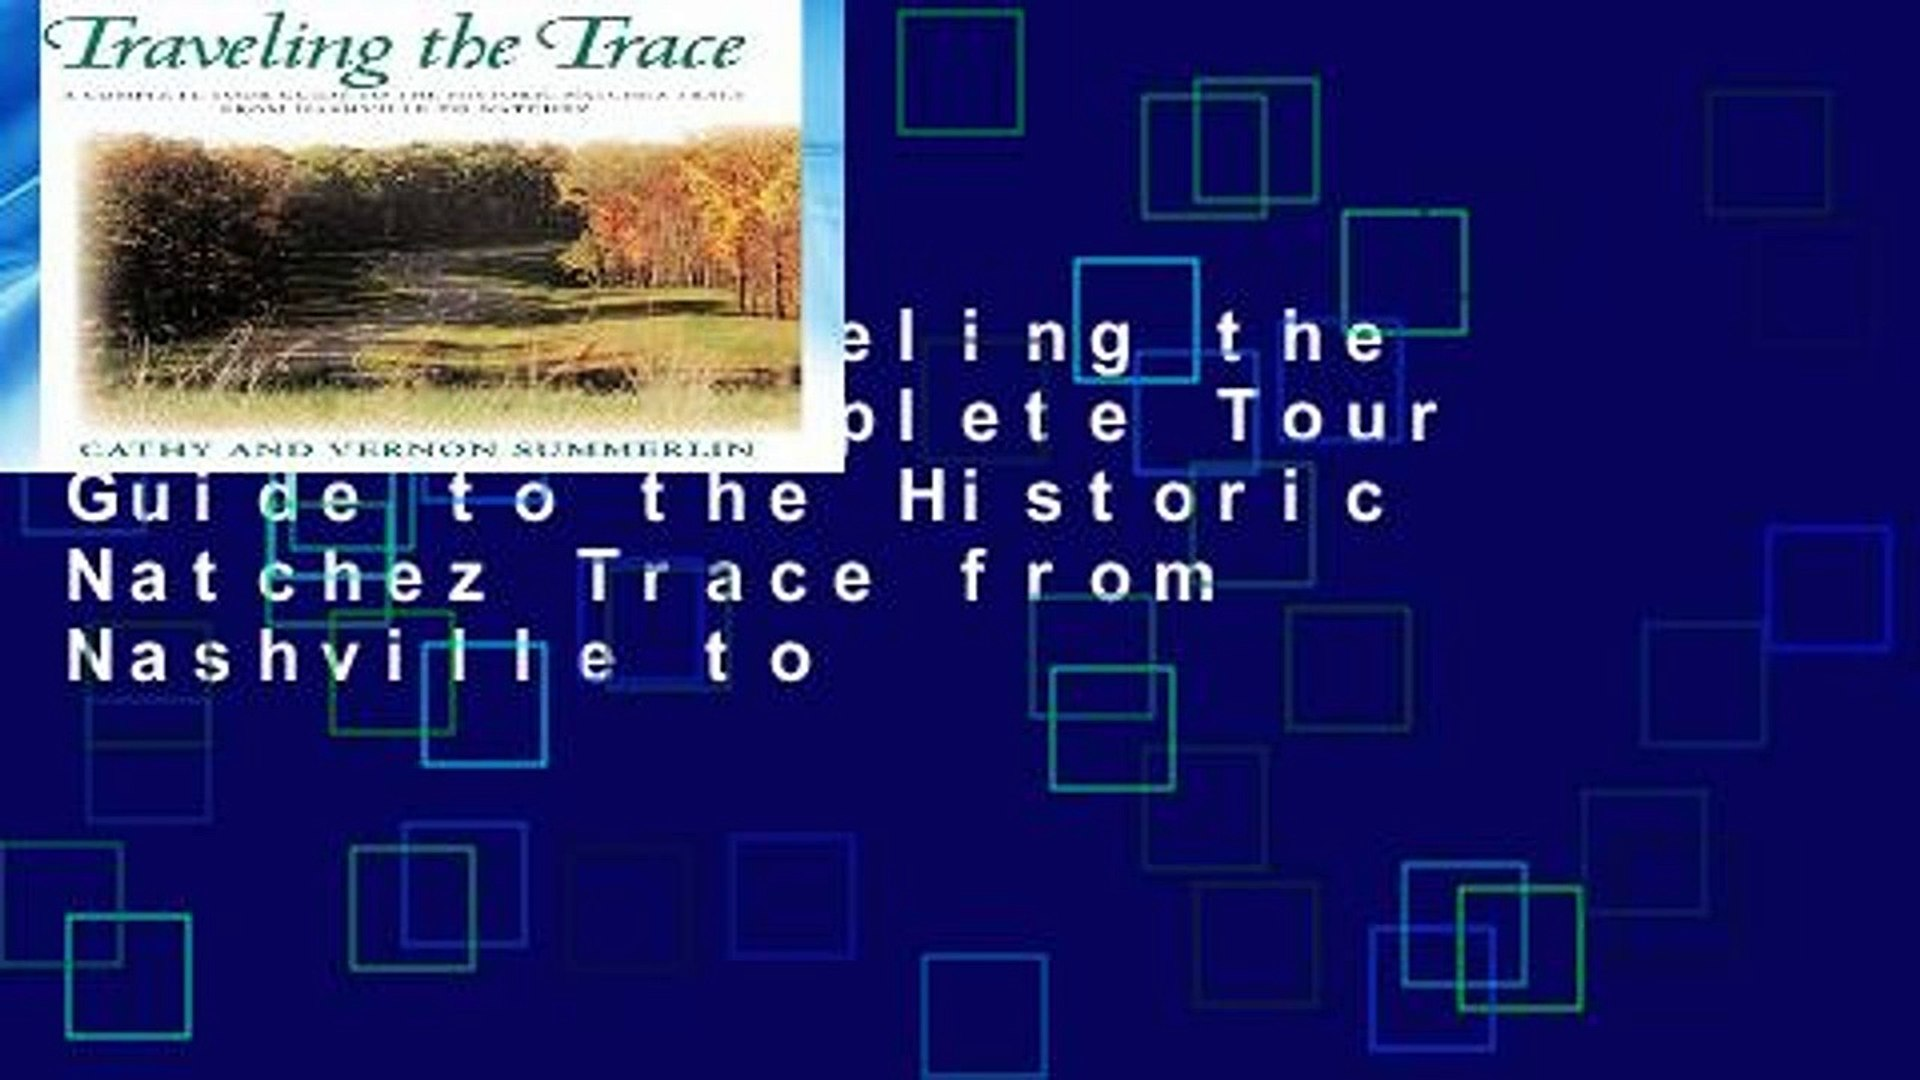 [P.D.F] Traveling the Trace: A Complete Tour Guide to the Historic Natchez Trace from Nashville to